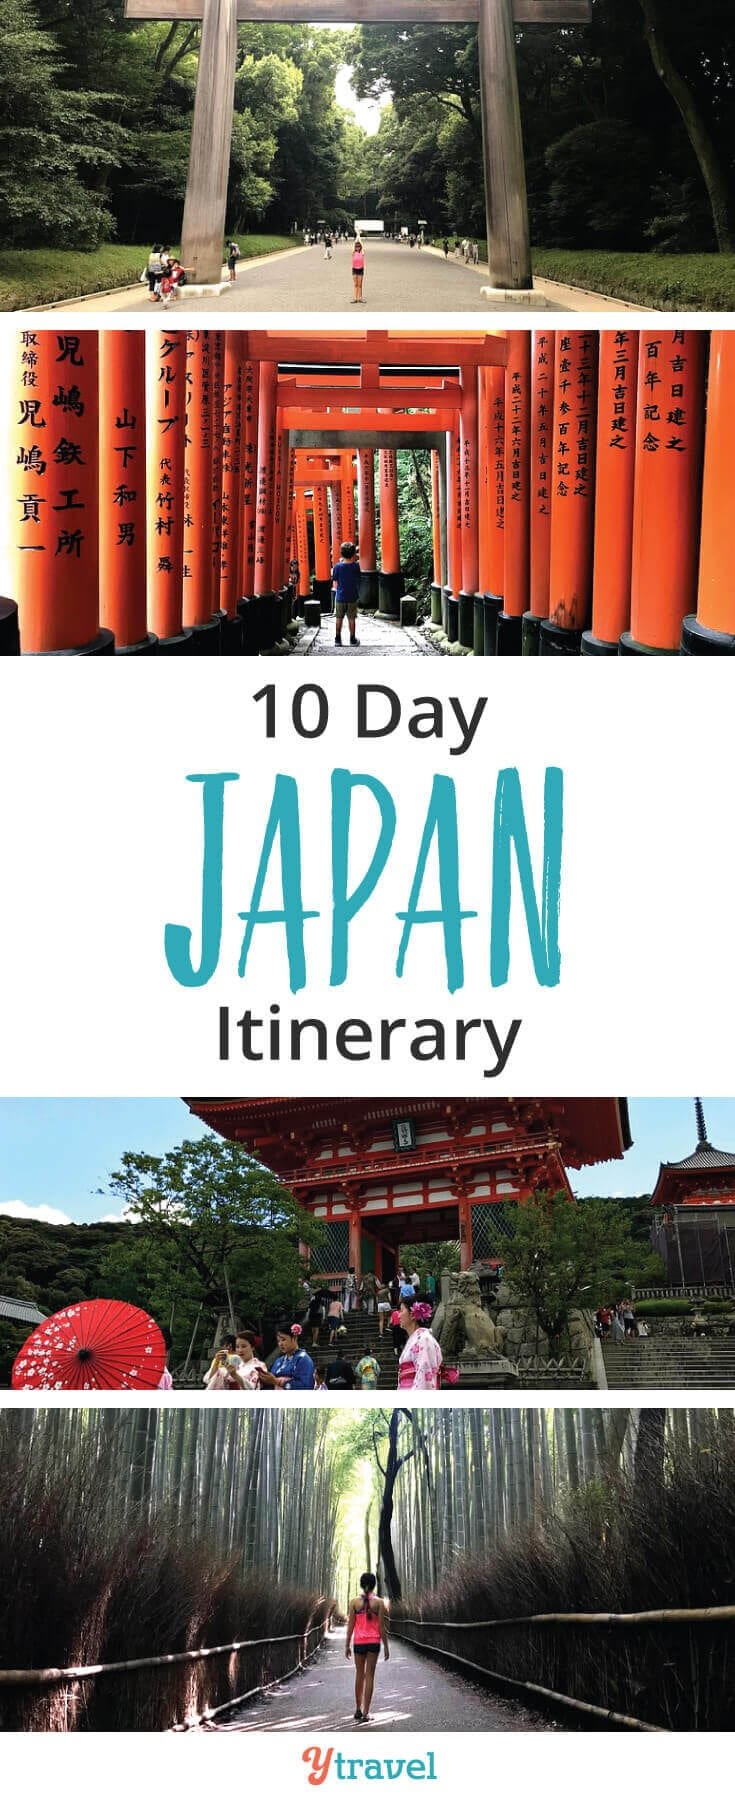 10 days in Japan itinerary. If you are planning a trip to Japan, this list of places to visit in Japan is perfect for first time visitors who want to see the highlights of Tokyo and Kyoto, taste the food, see the landscapes, the temples, experience the culture, and much more!